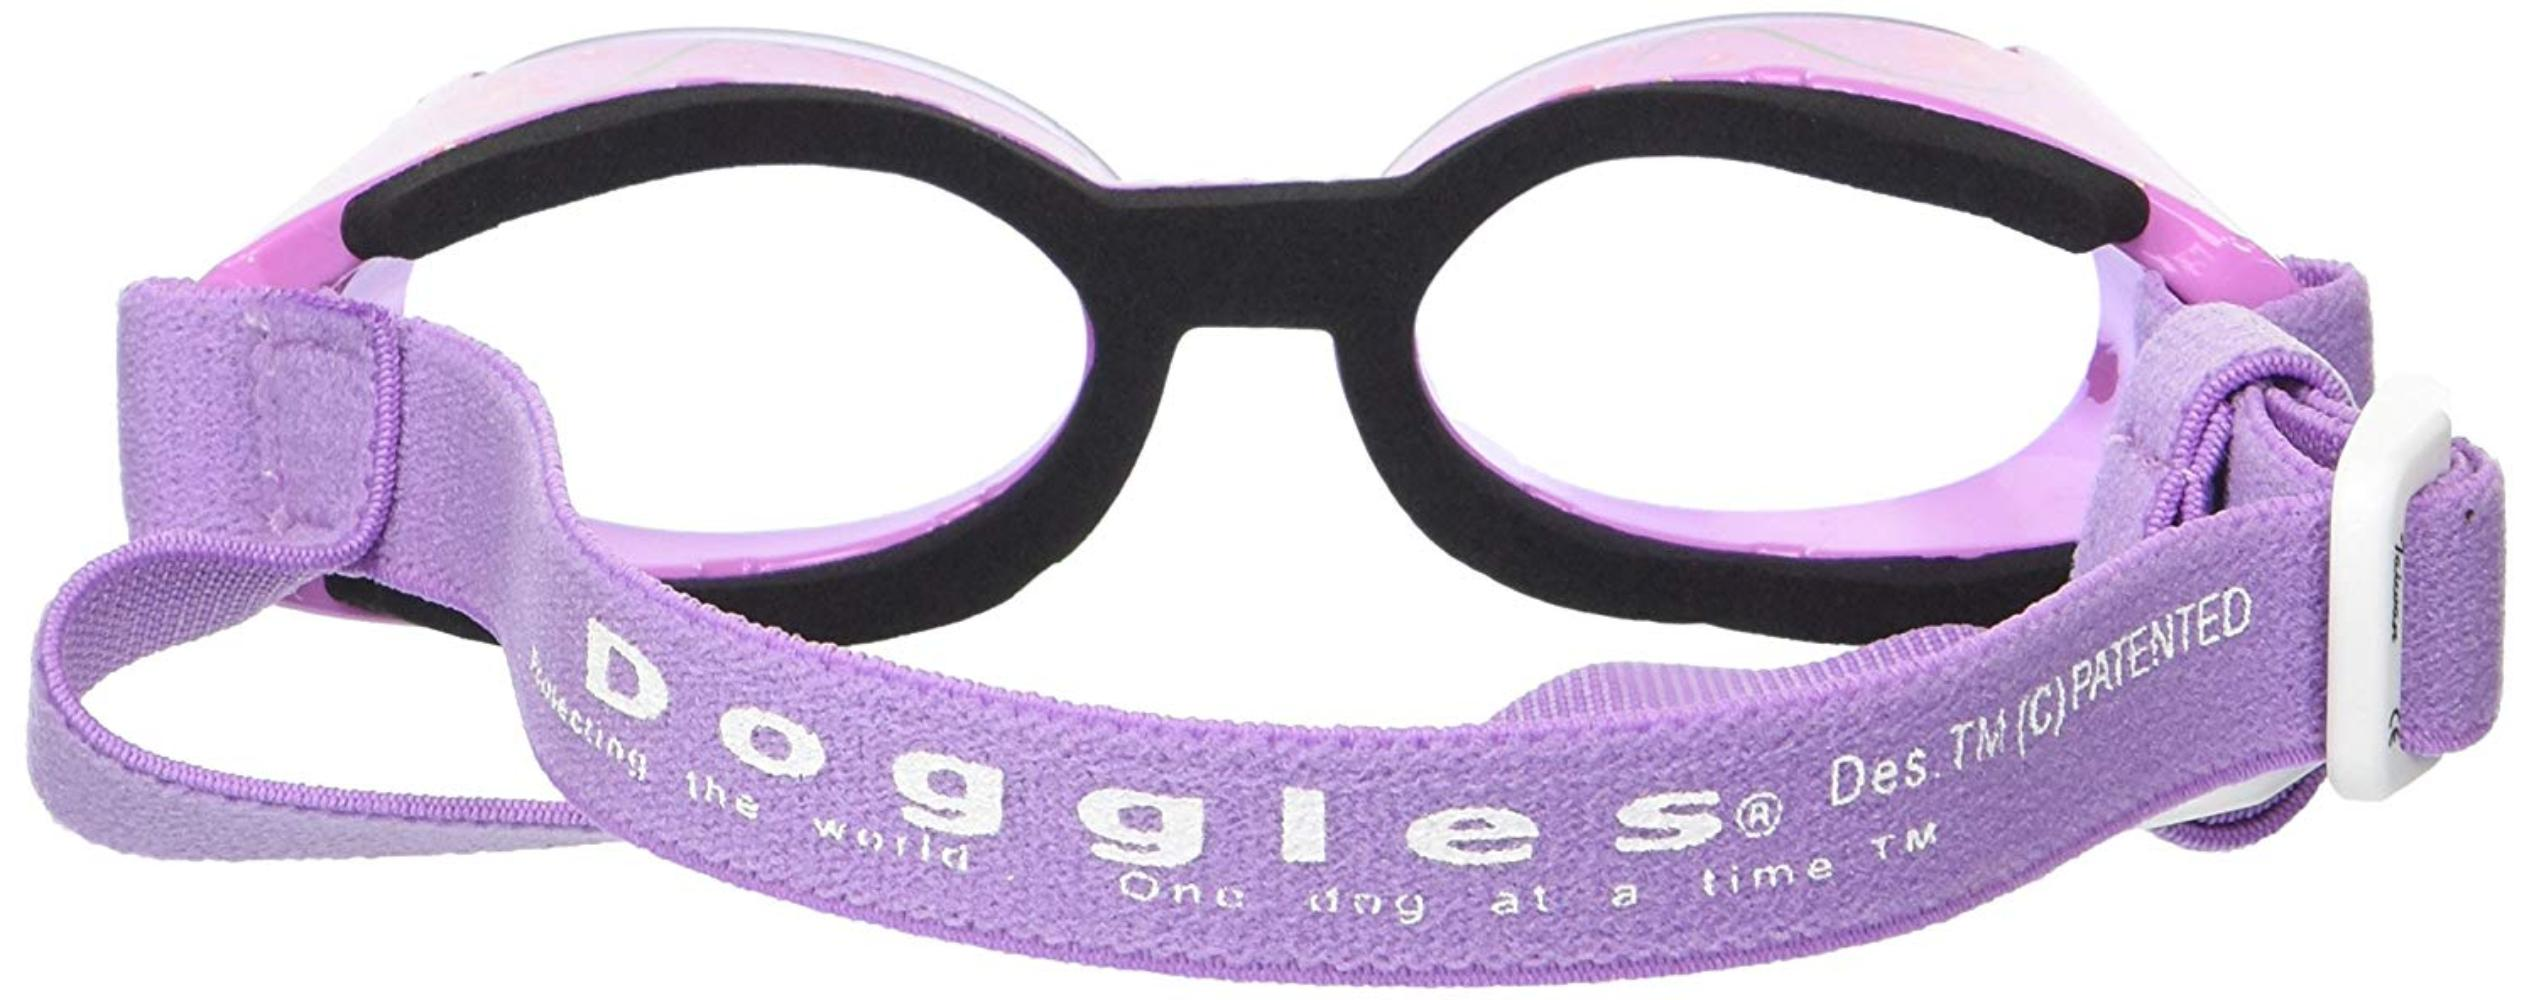 ILS Small Lilac Flower Frame with Purple Lens Dog Goggles ... 6e4526bffa